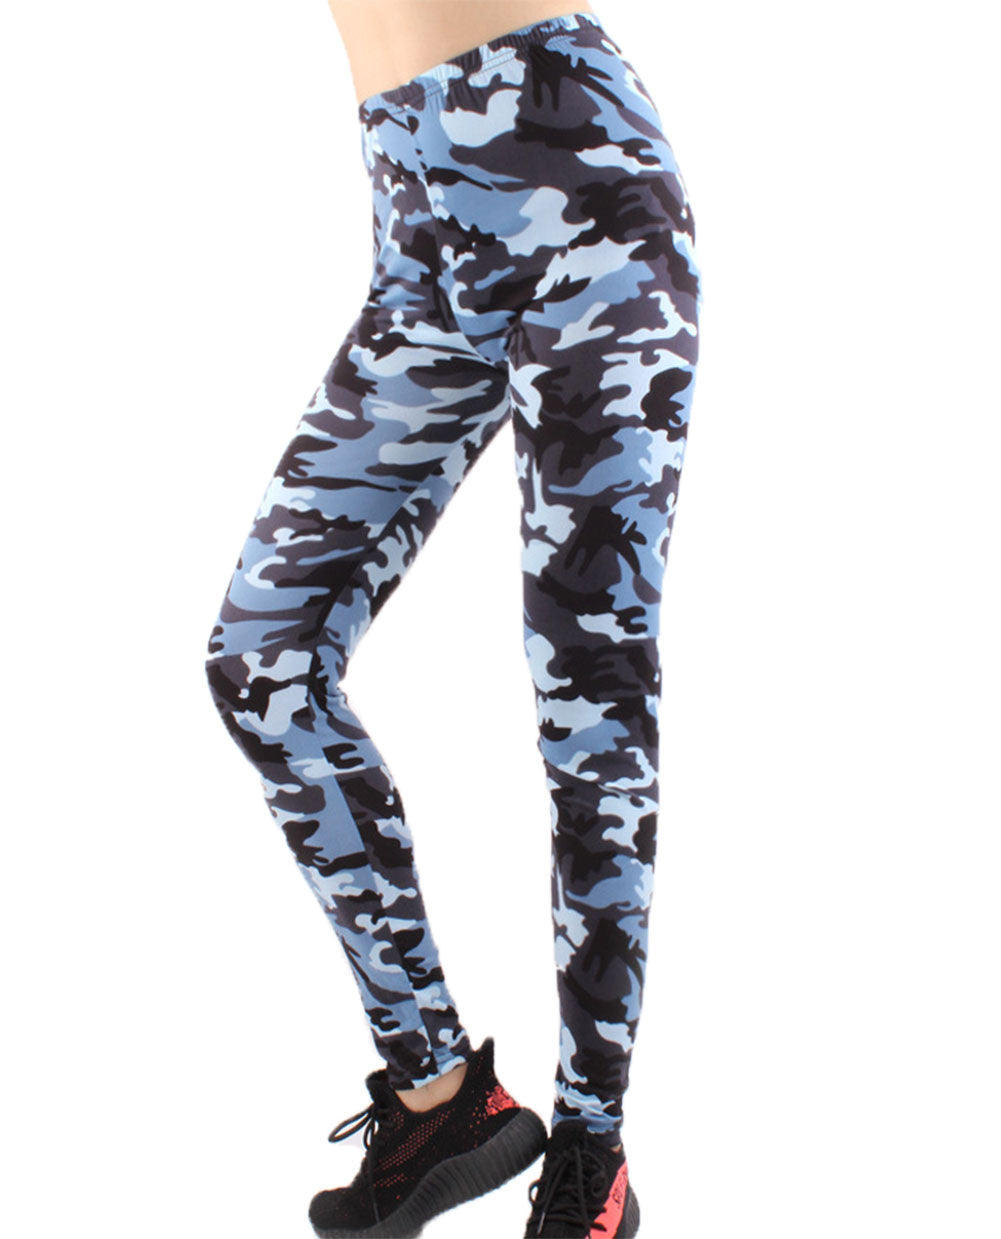 Women's Camouflage Camo Skinny Leggings Active Sports Tights Leggings